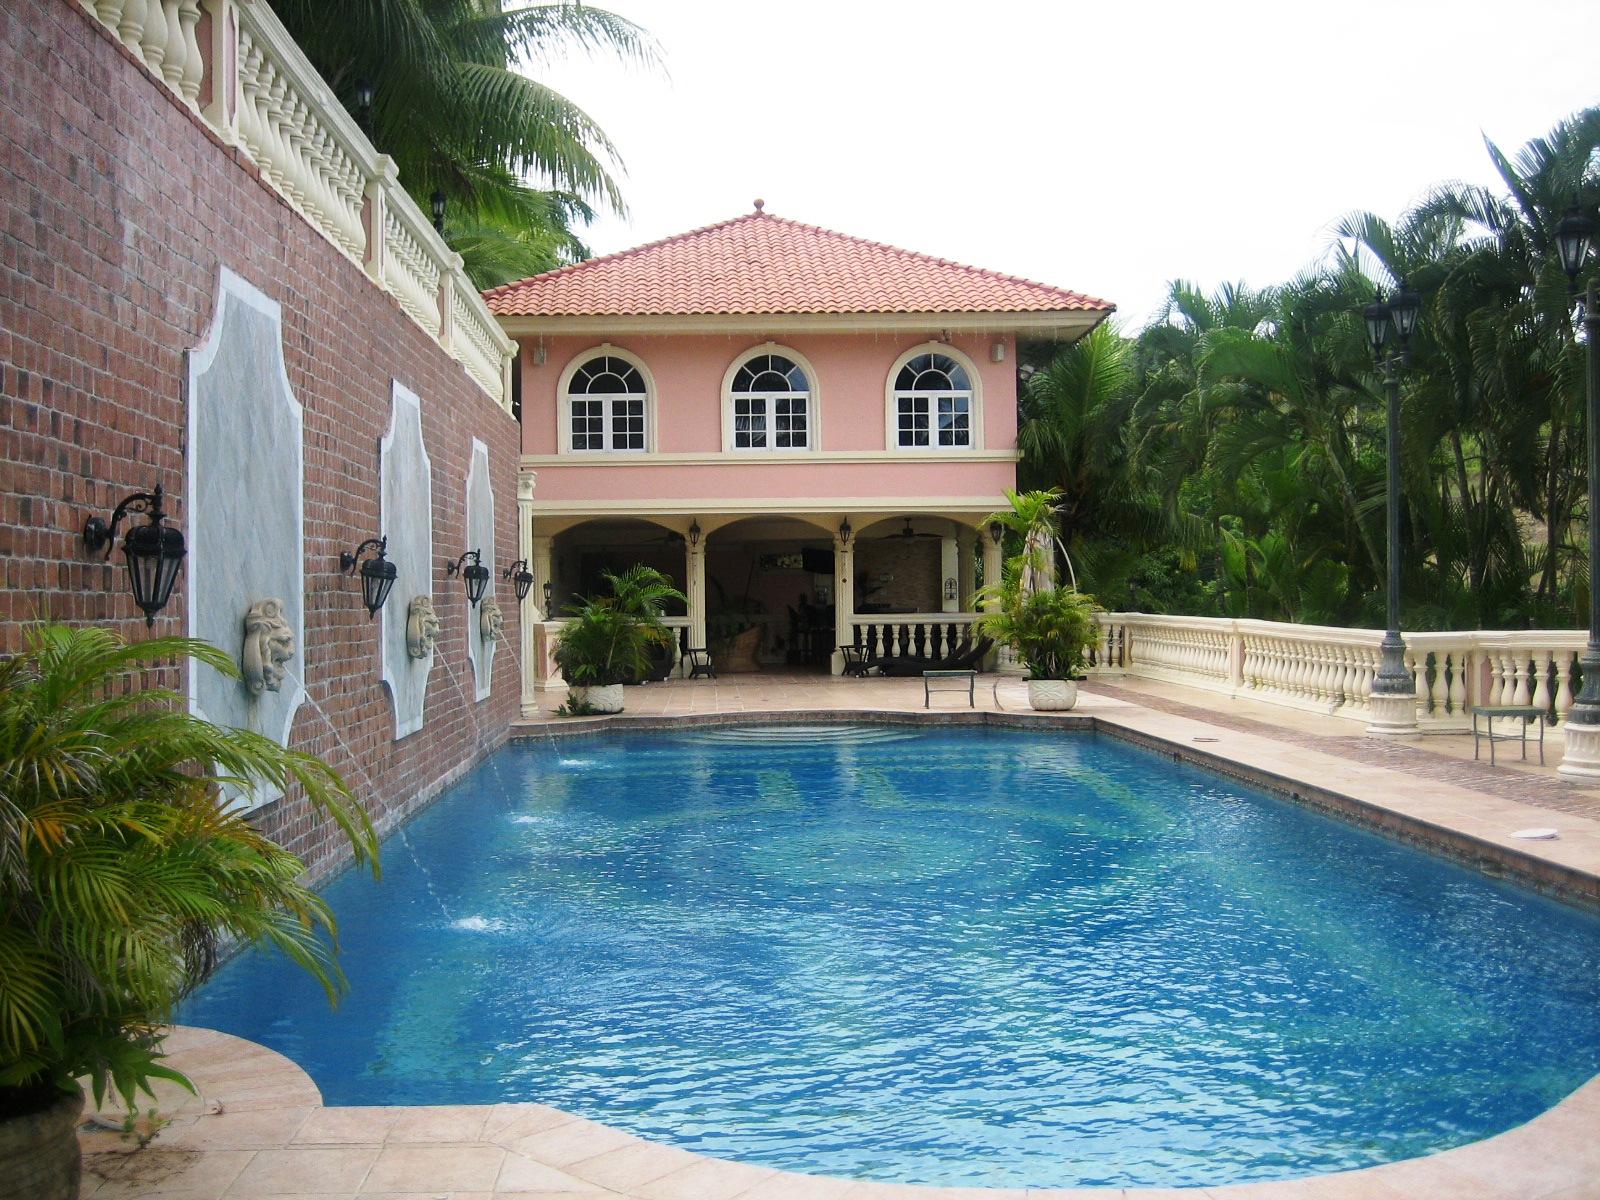 Five bedroom house with a swimming pool for sale in panama for 6 bedroom house with swimming pool for sale